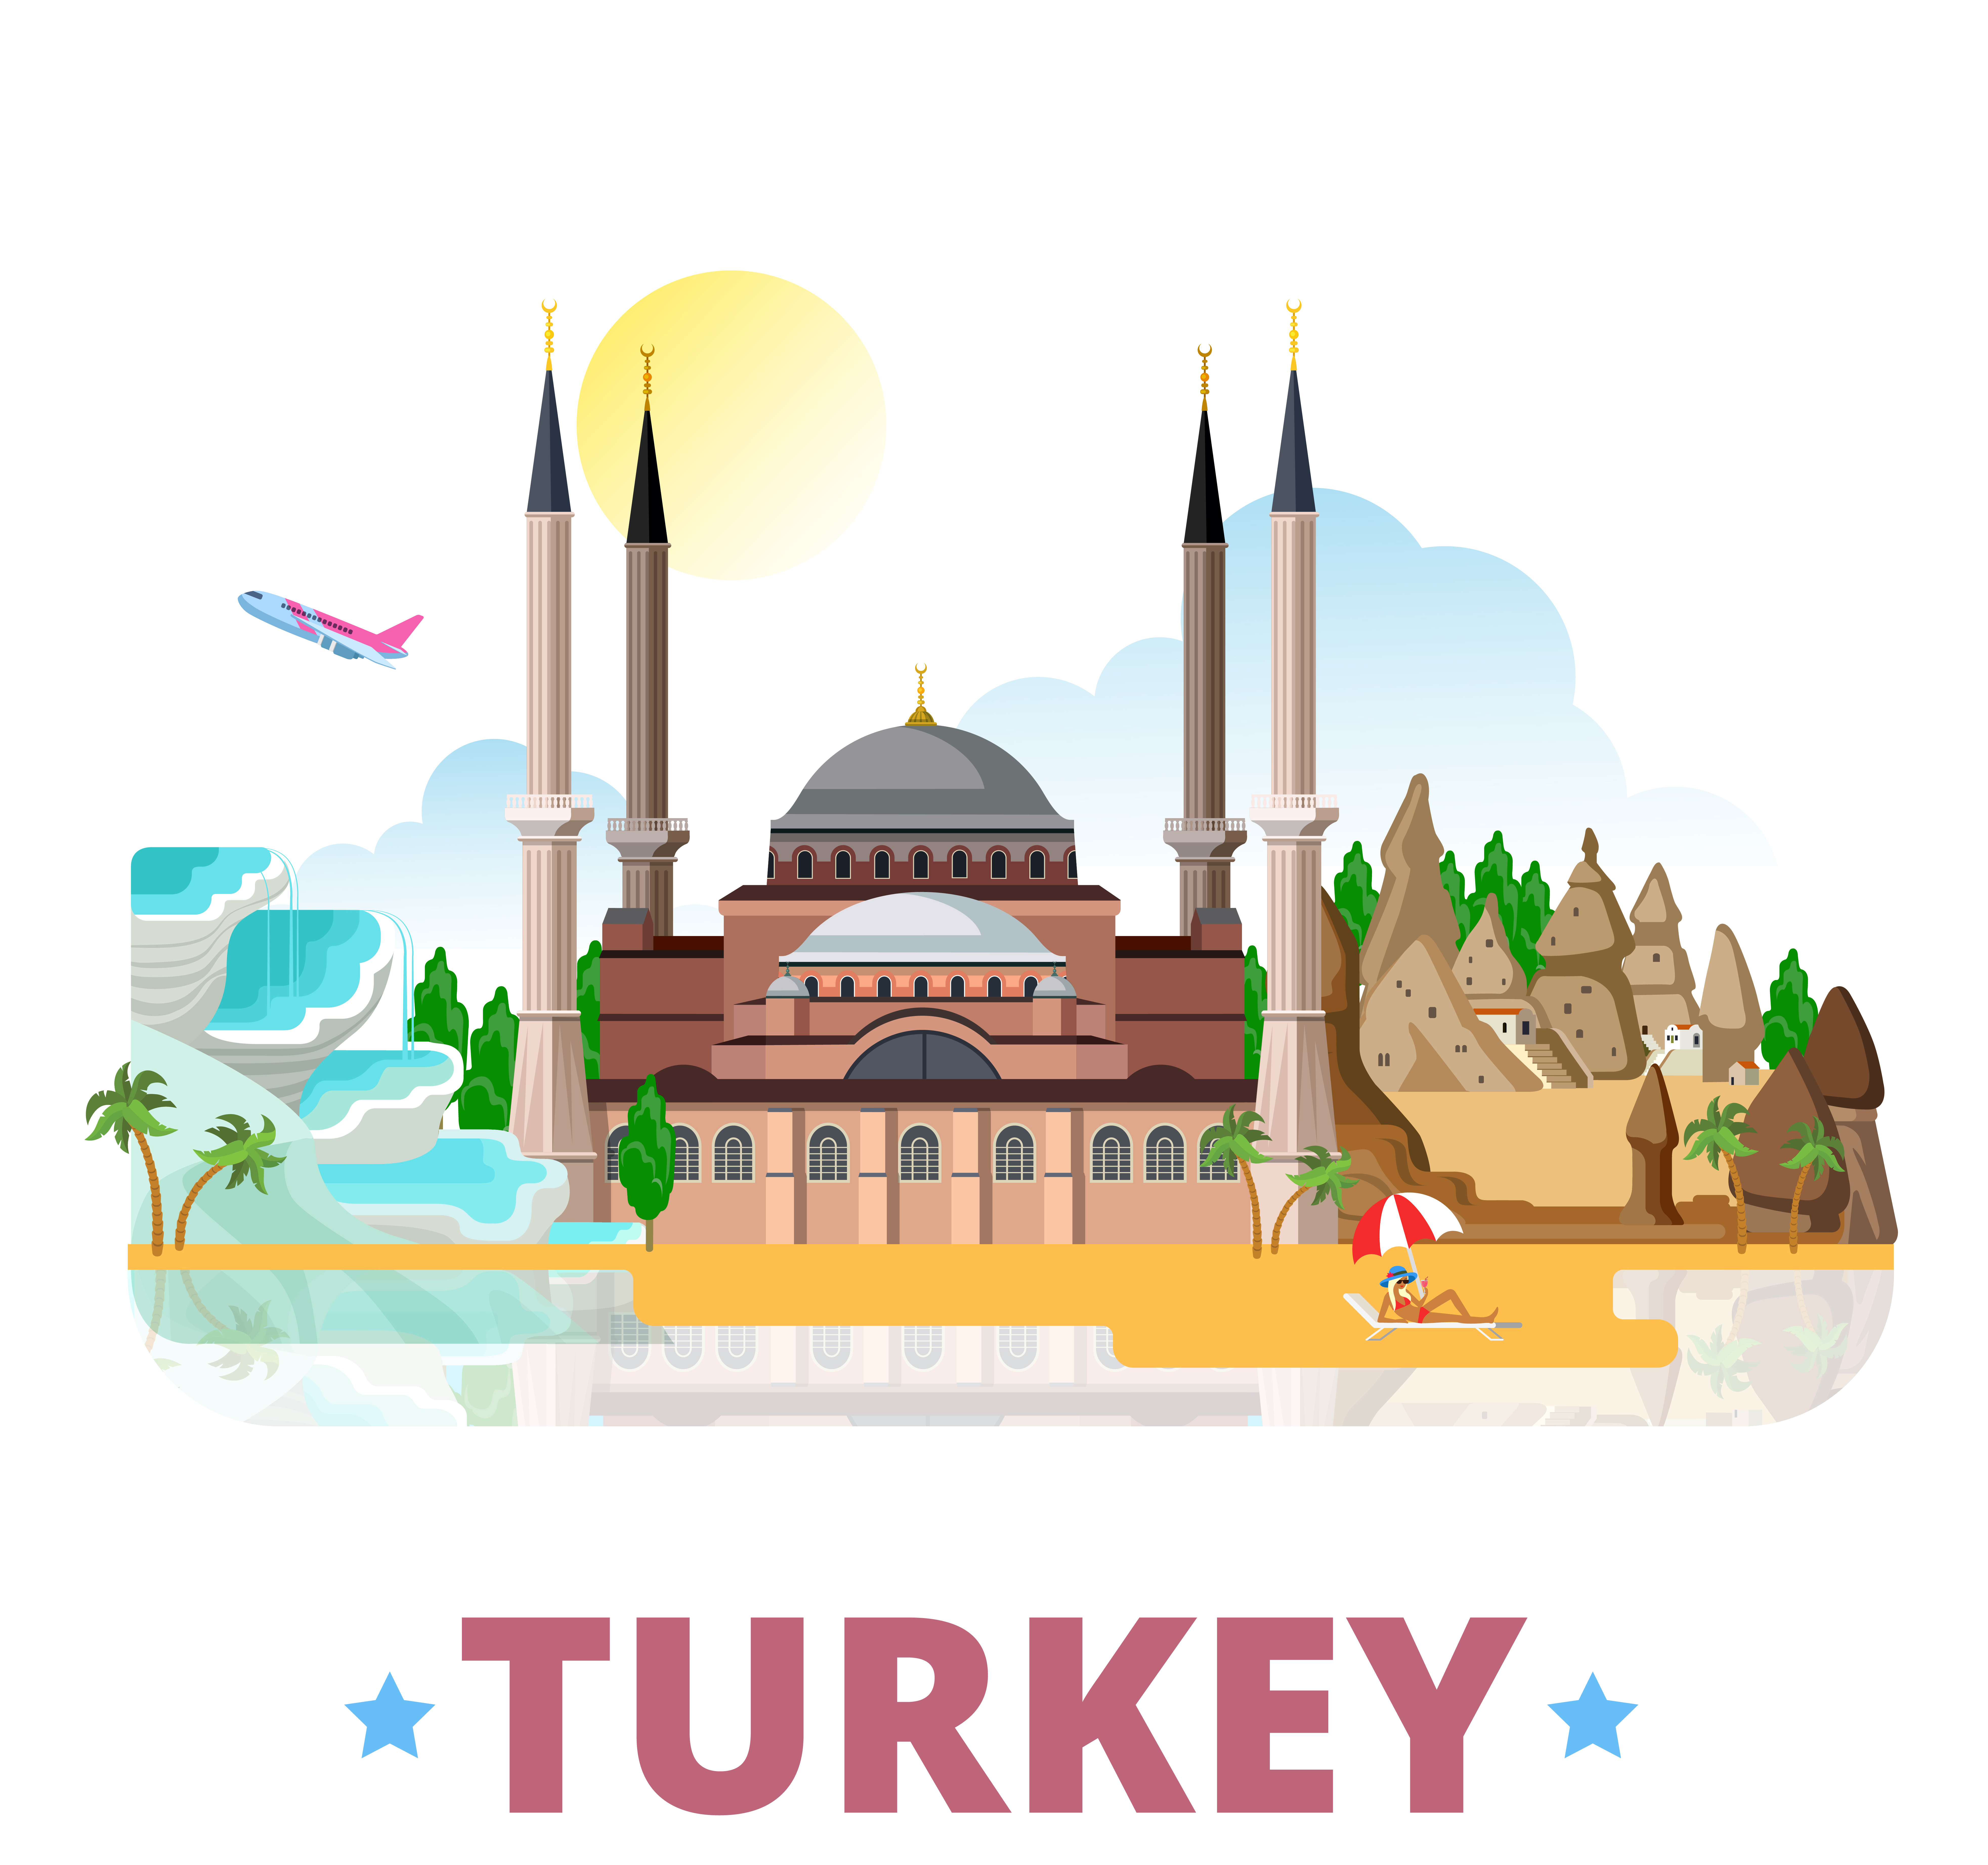 Turkey - Global Storybook